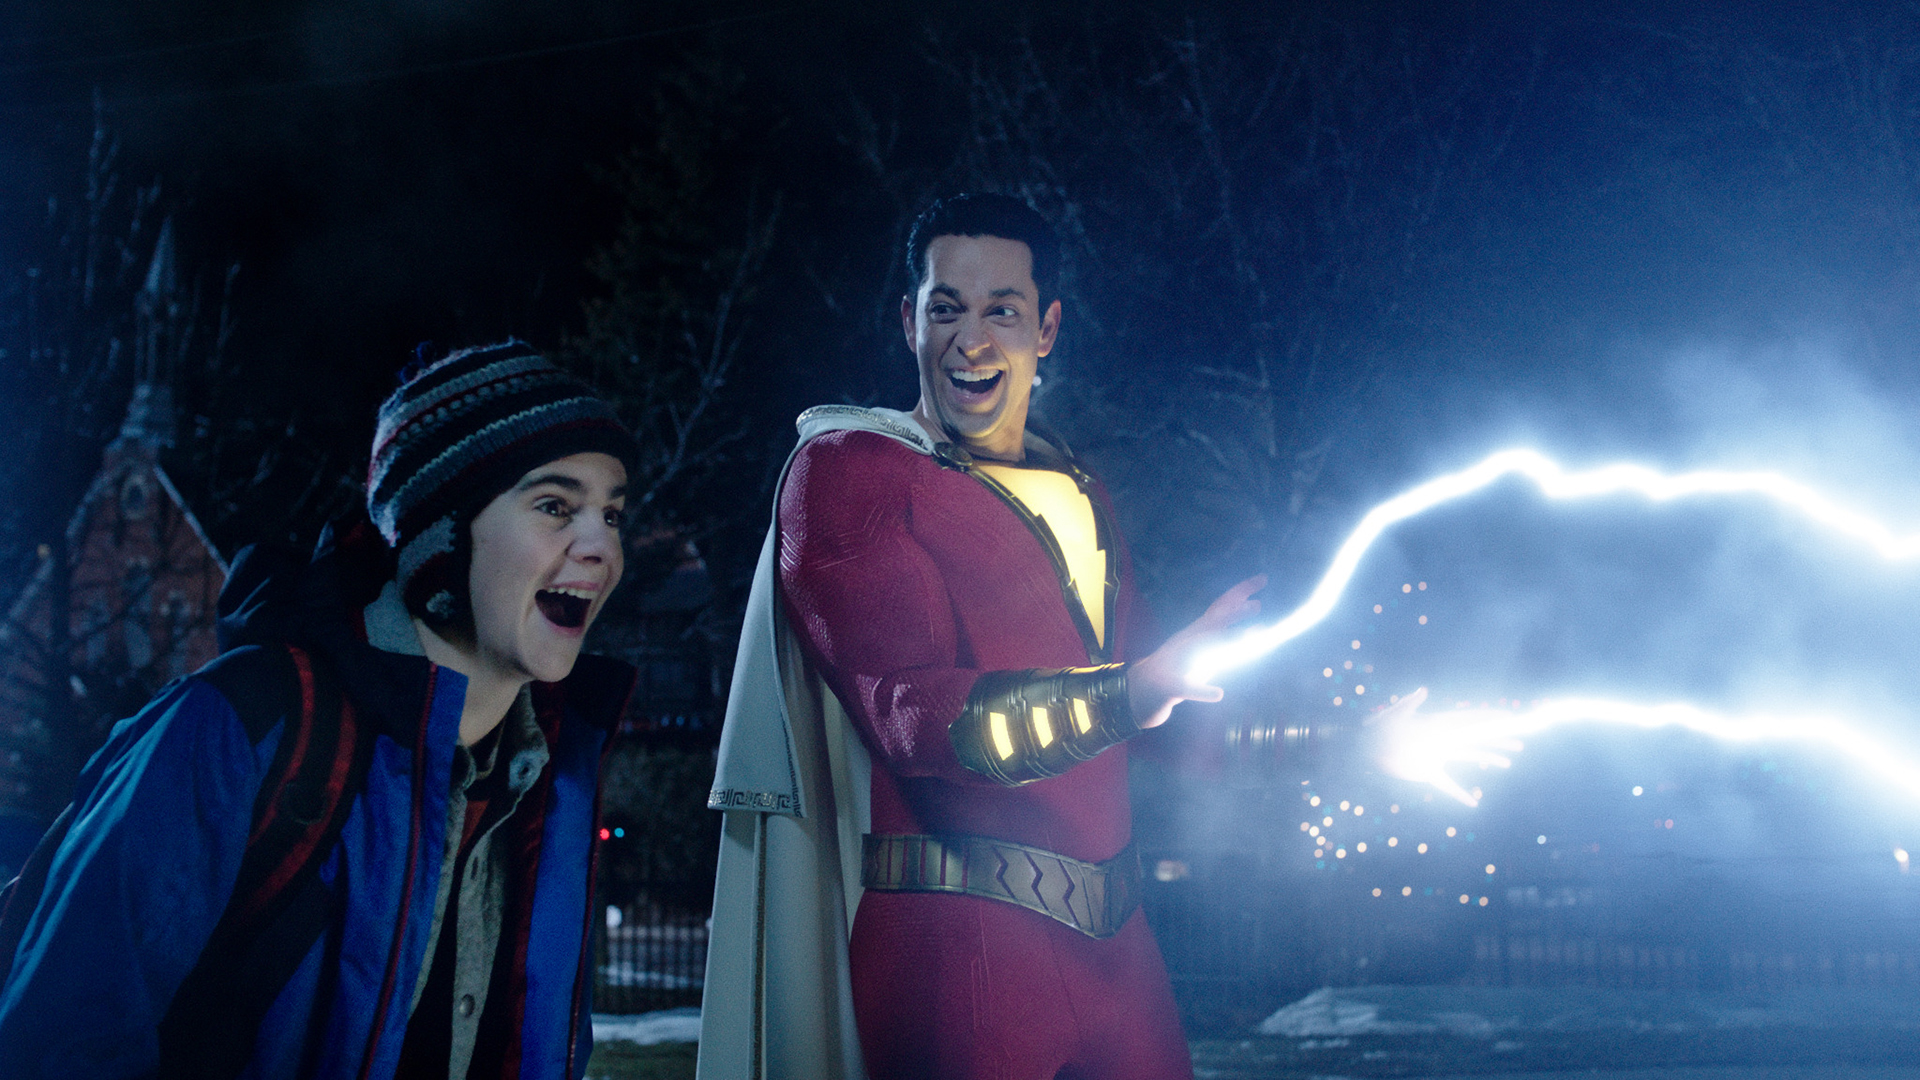 Review: Like a bolt of lightning, 'Shazam!' pops and sparkles